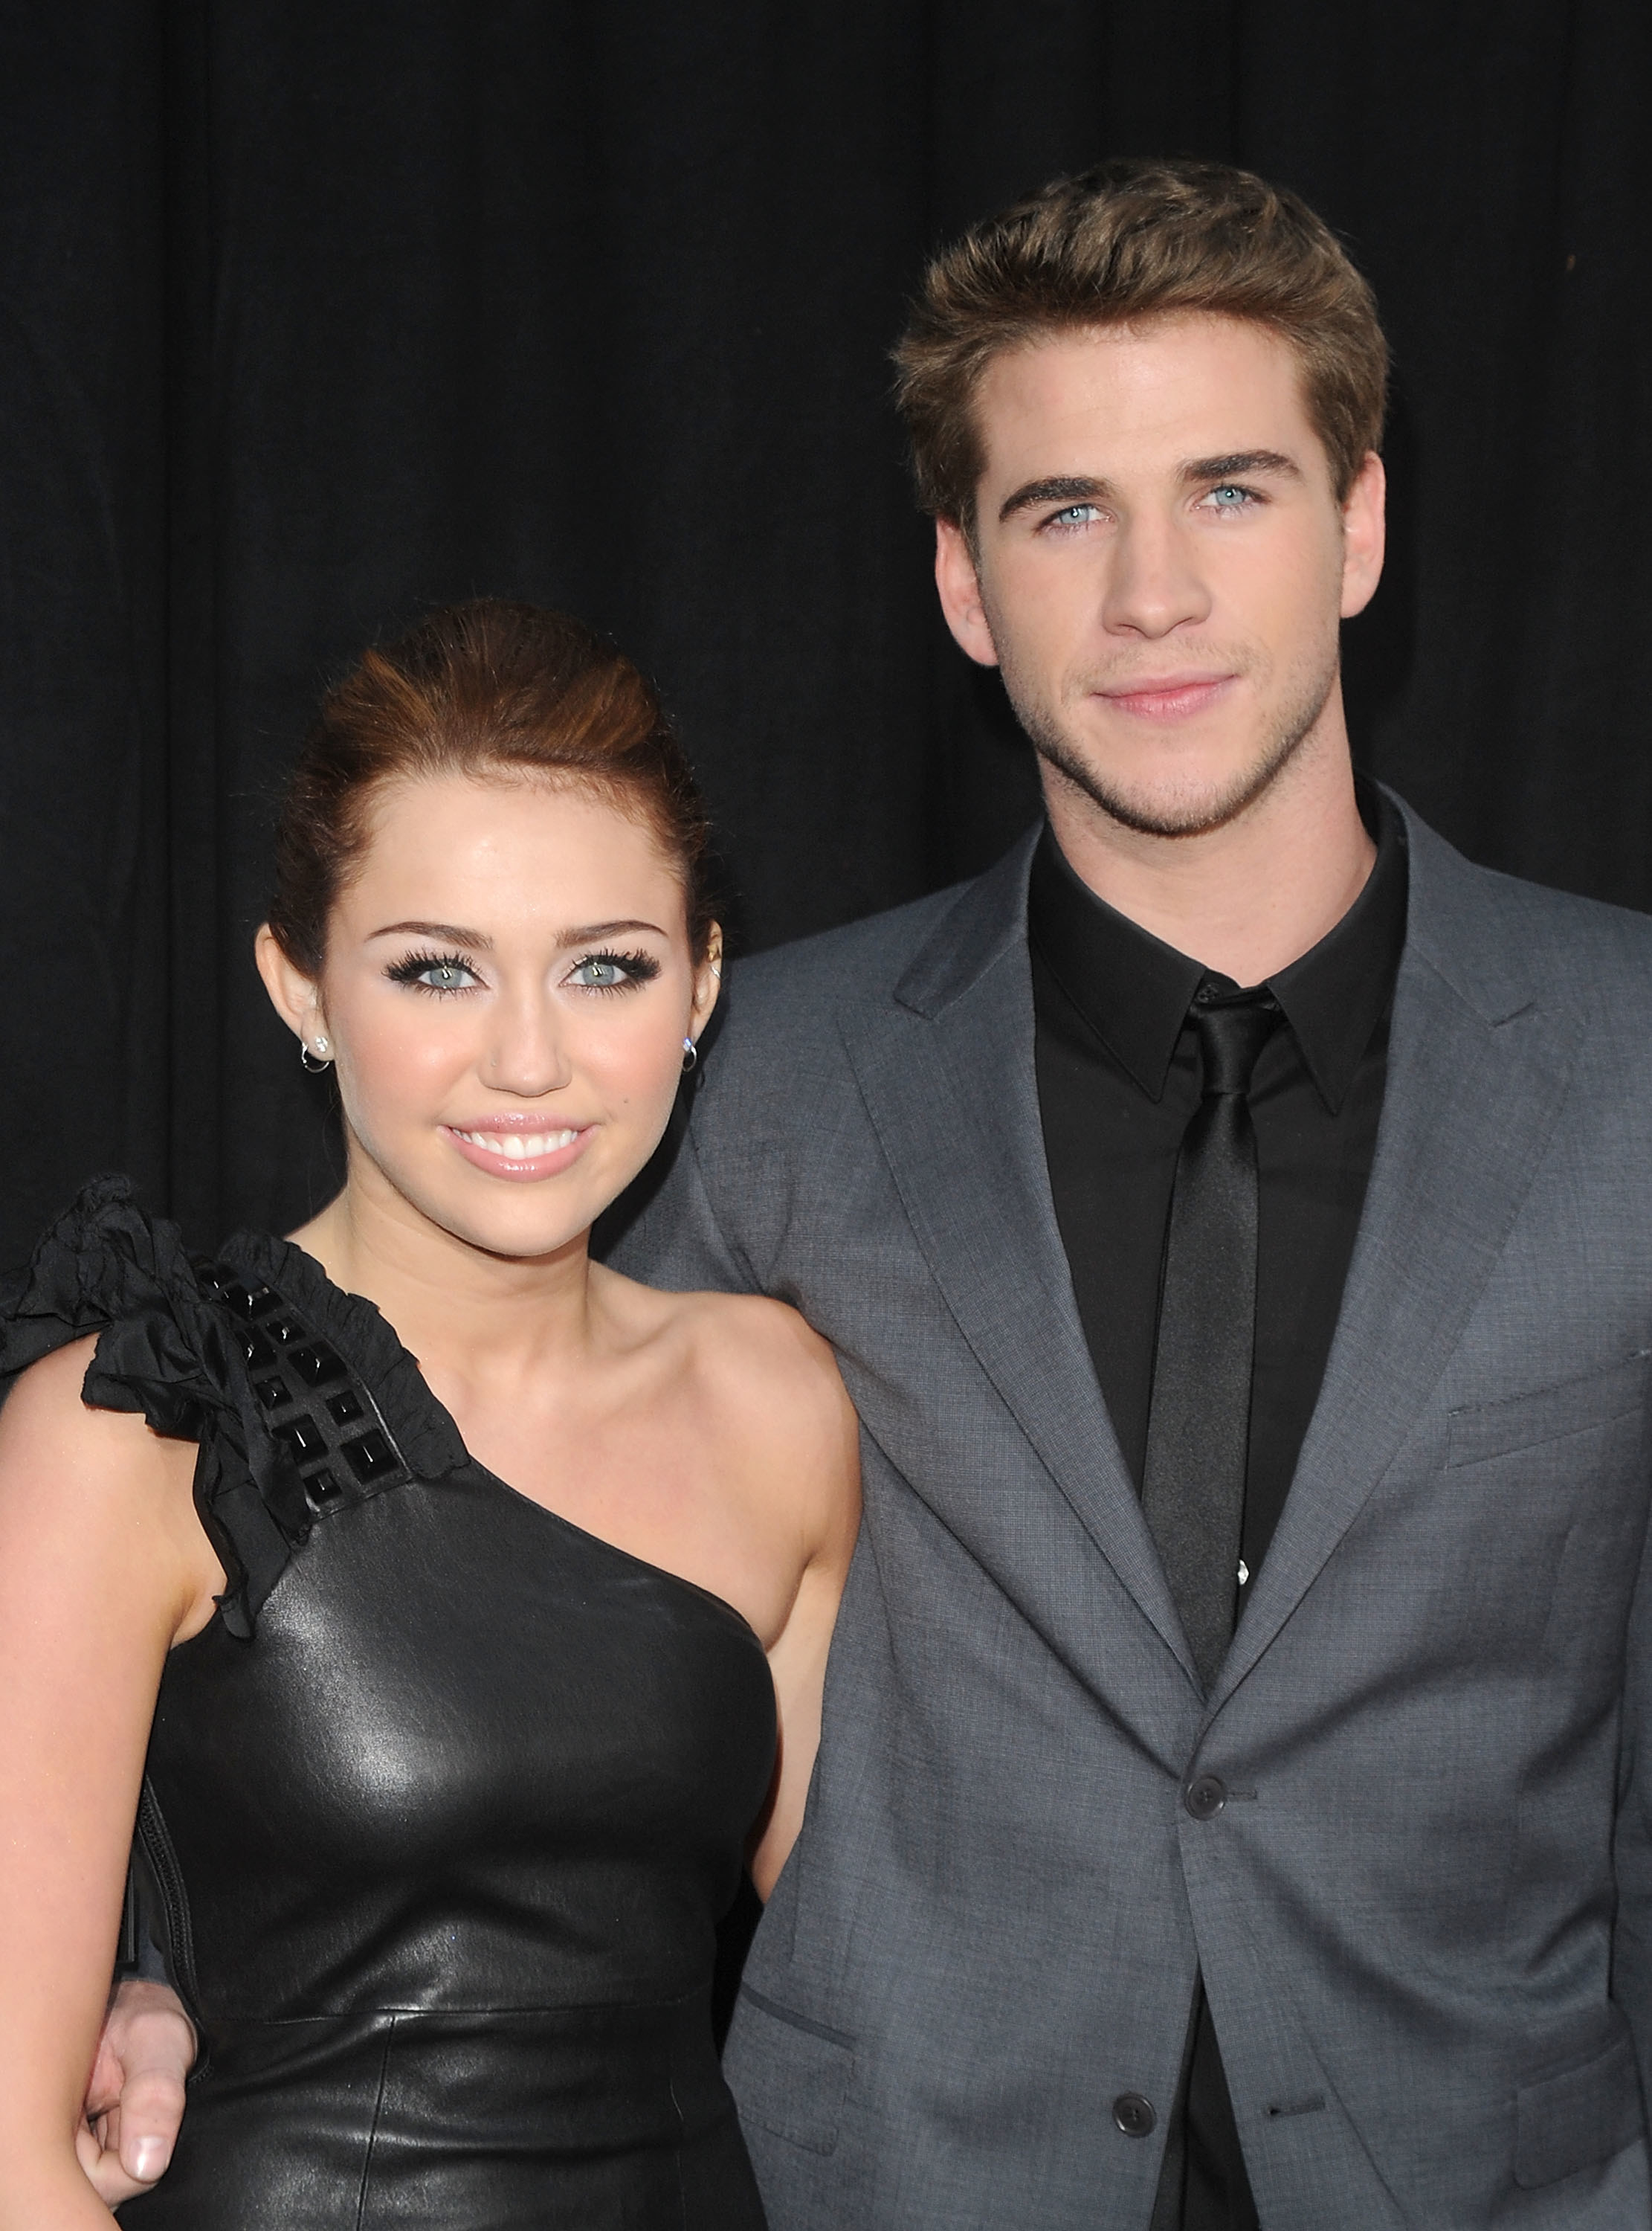 """Miley Cyrus in a black one shoulder pleather dress with Liam Hemsworth who is a grey suit with black shirt and black tie at the premiere of their movie """"The Last Song"""" in March 2010."""